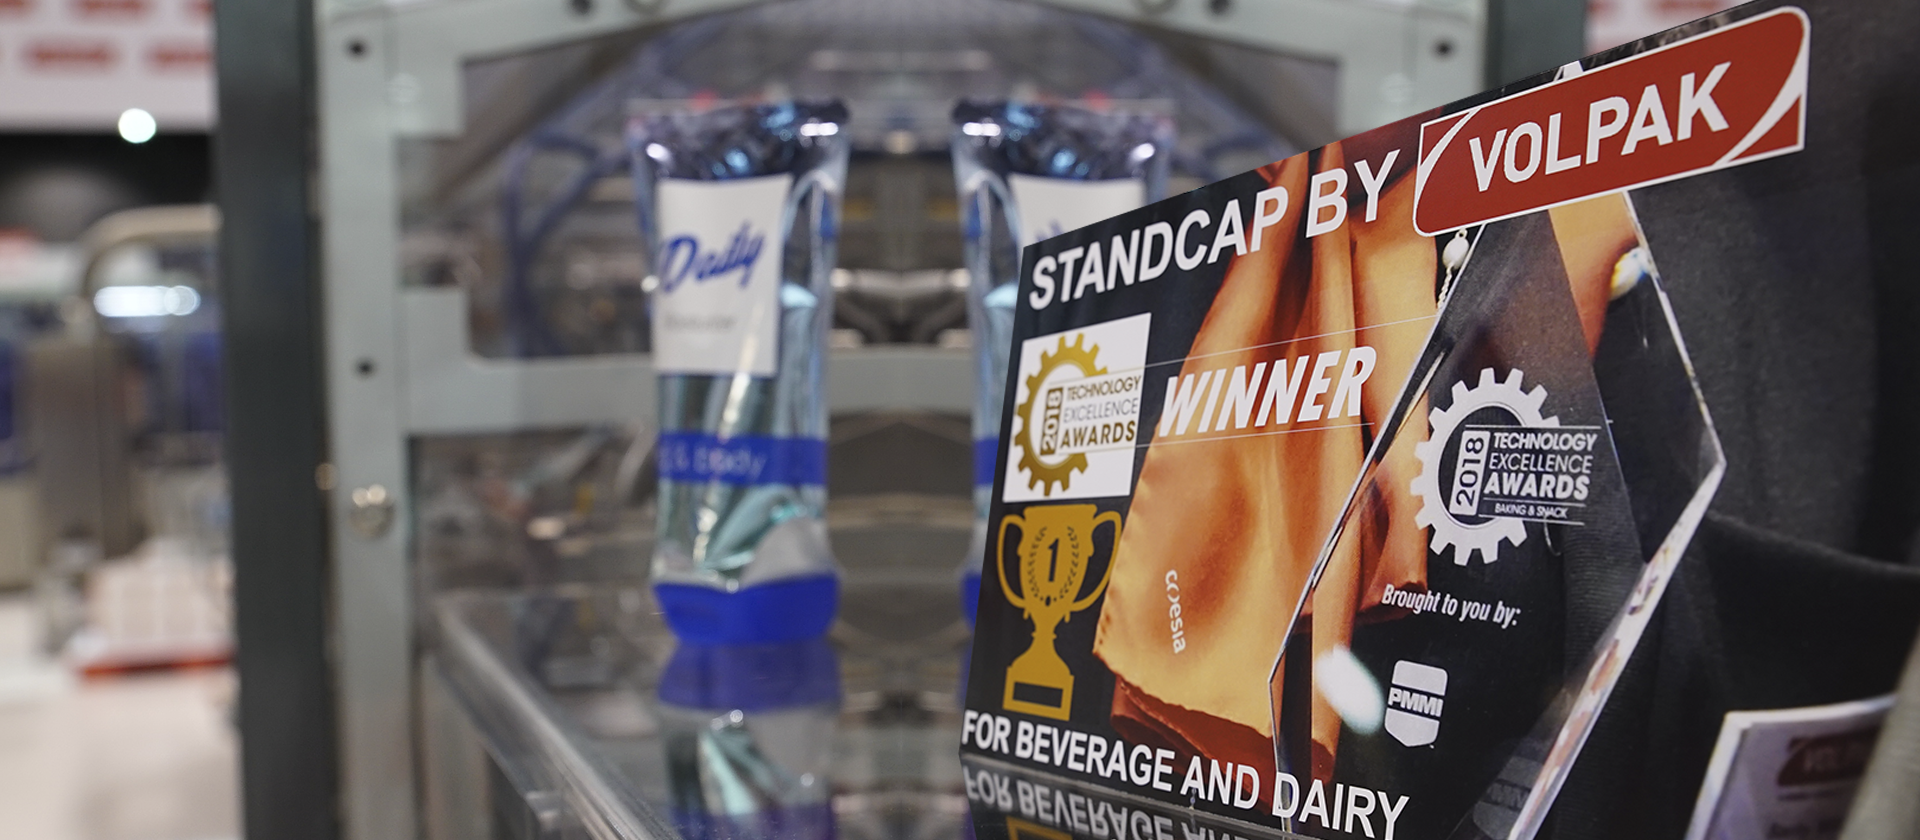 STANDCAP by Volpak winning Technology Excellence Award at Pack Expo 2018